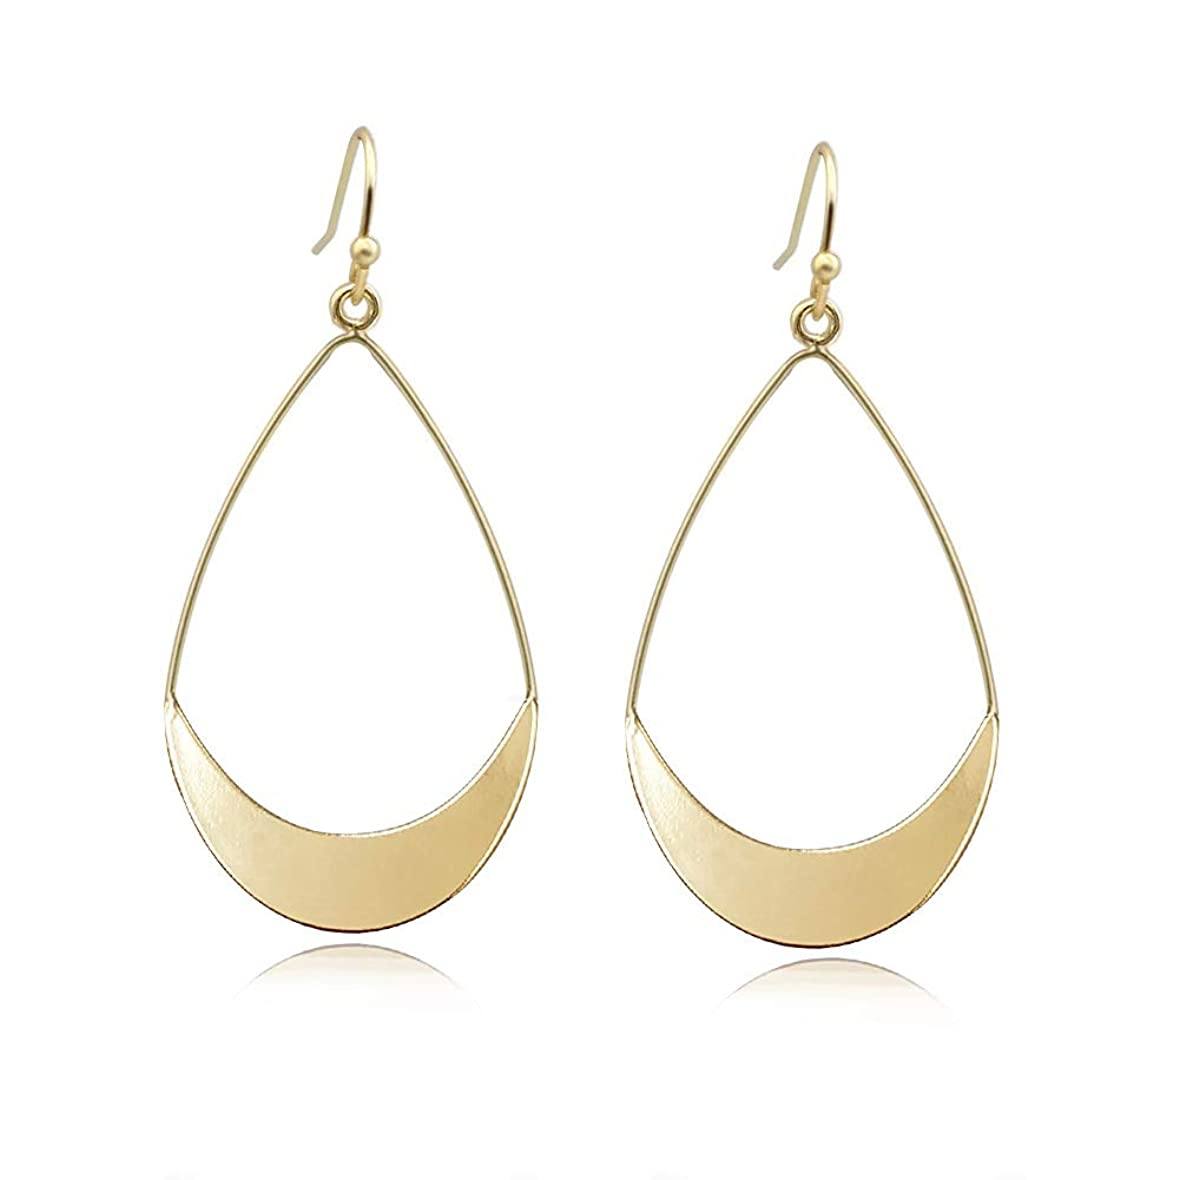 1a733c955080f dangle earrings - bhcleaningservices.com